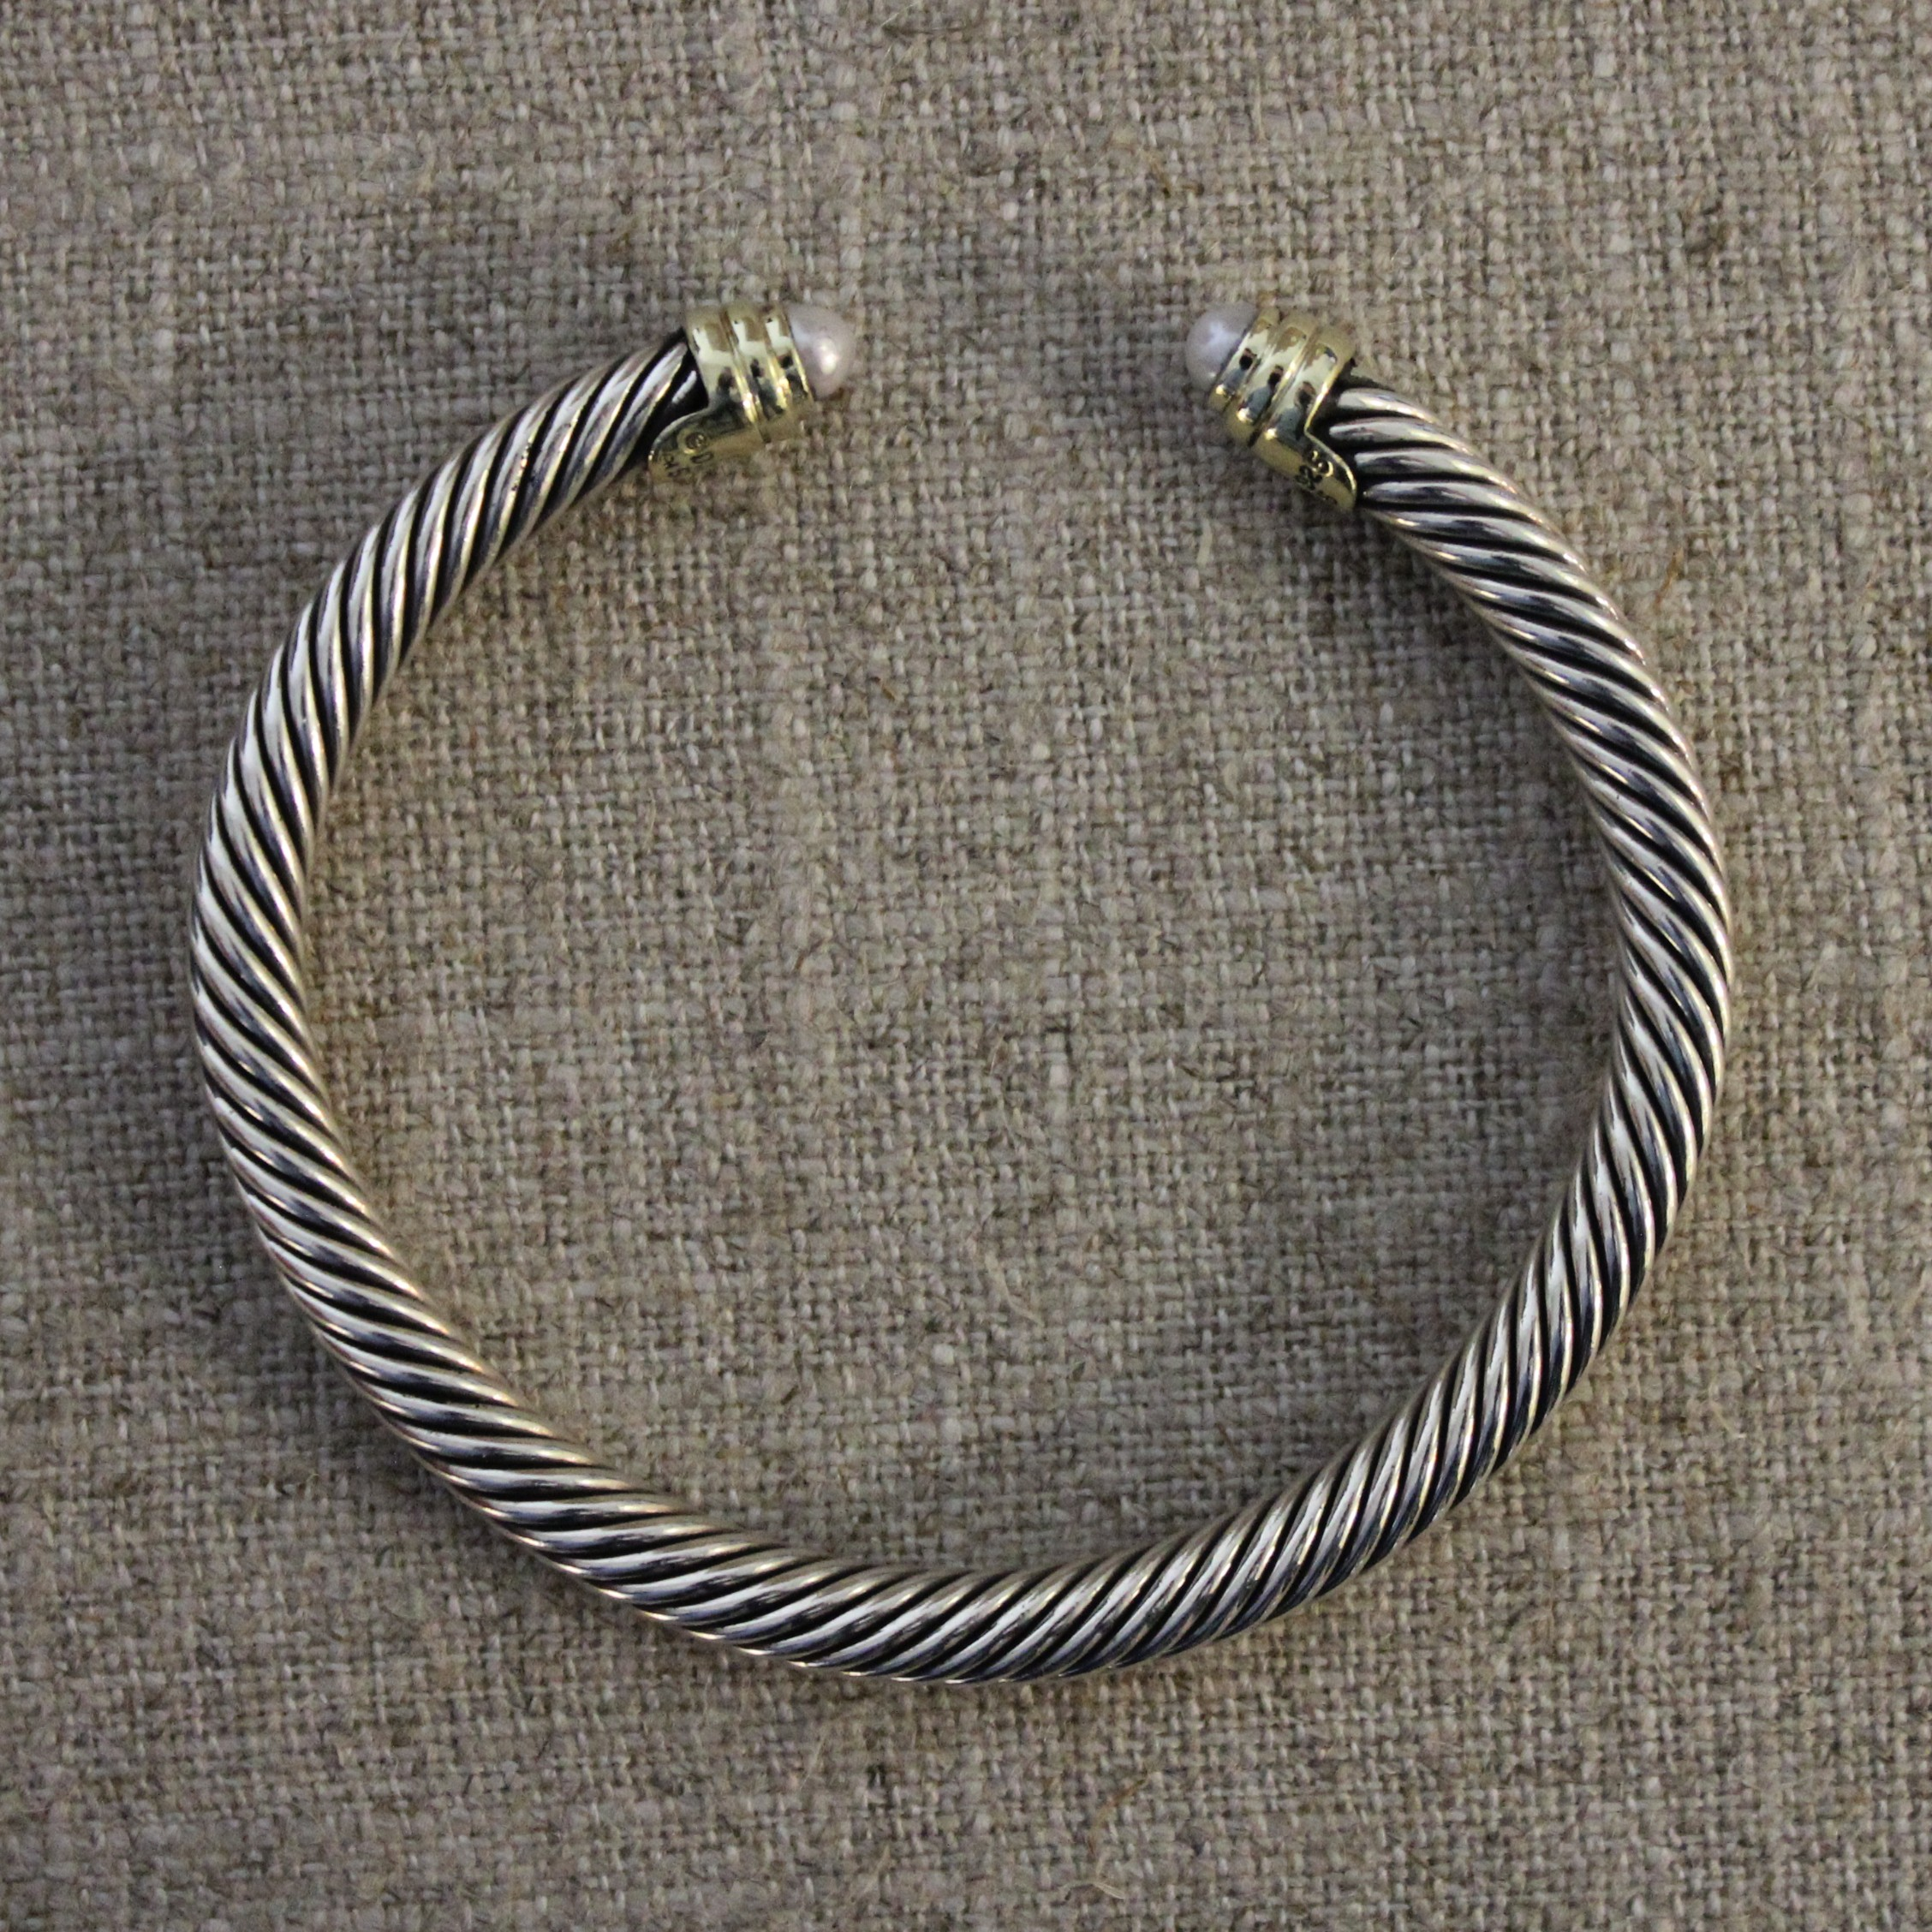 VINTAGE STERLING SILVER AND 18K YELLOW GOLD DAVID YURMAN CABLE BRACELET